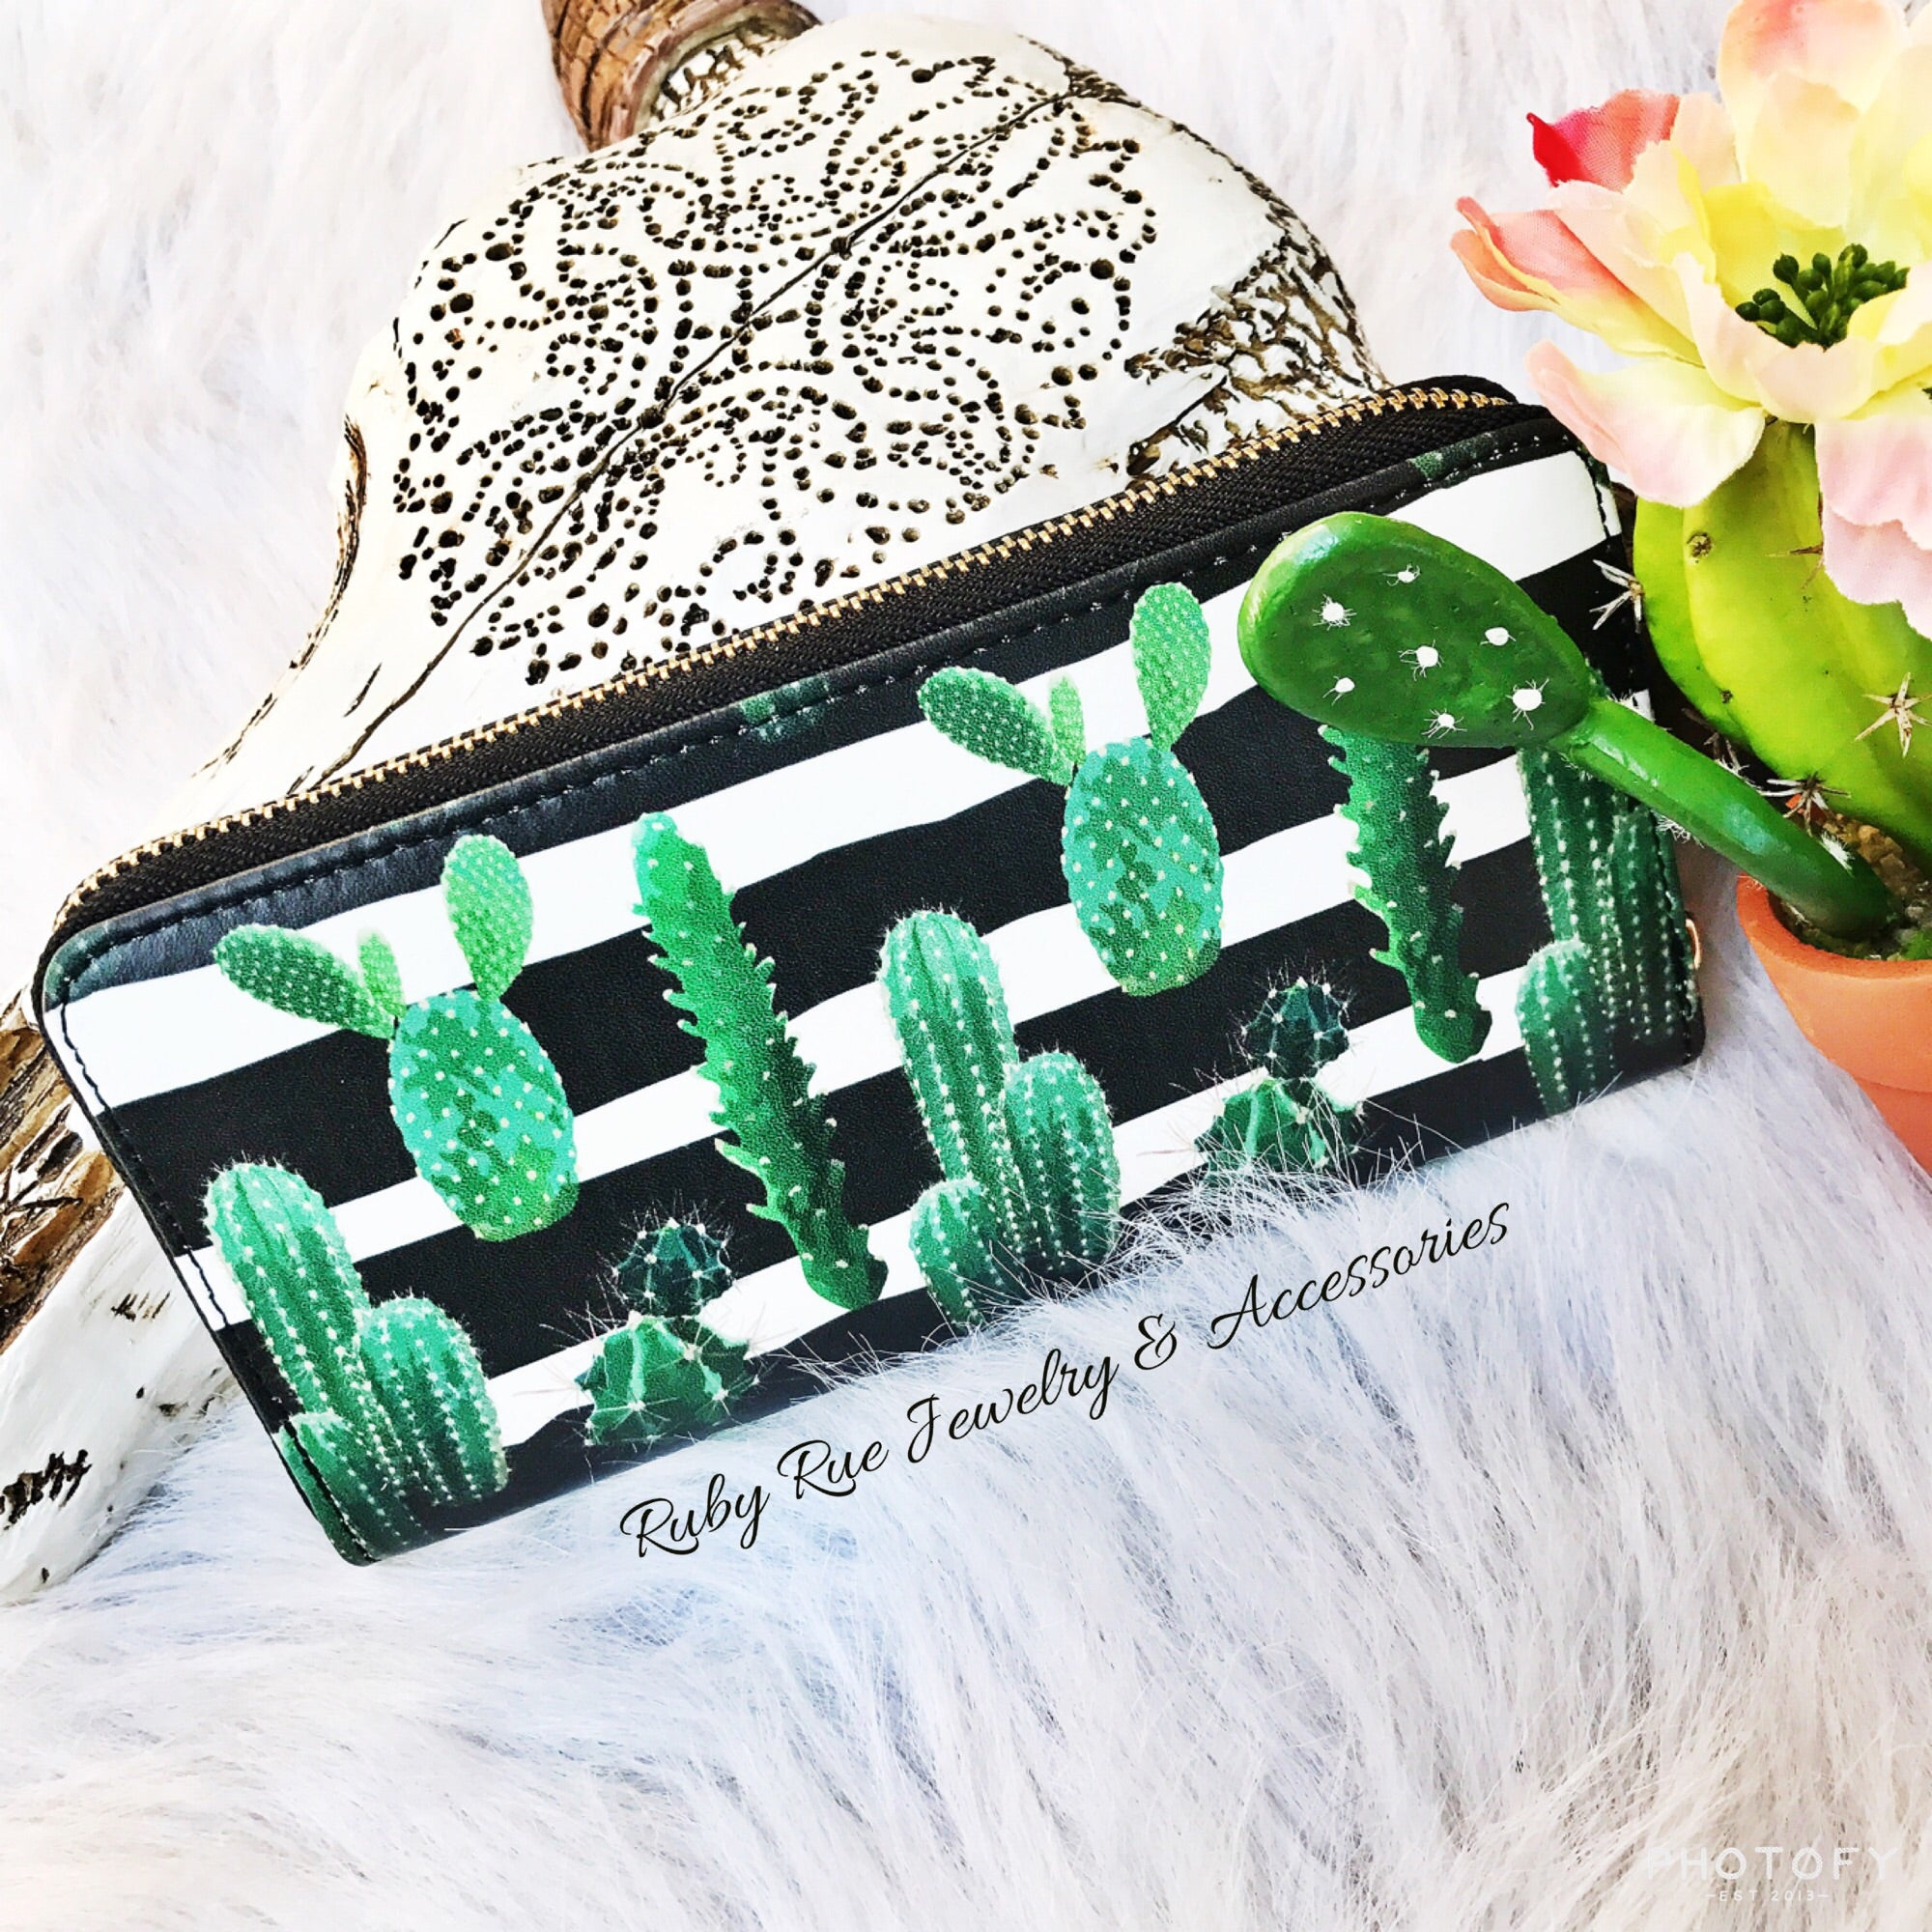 Black Striped Cactus Wallet - Ruby Rue Jewelry & Accessories